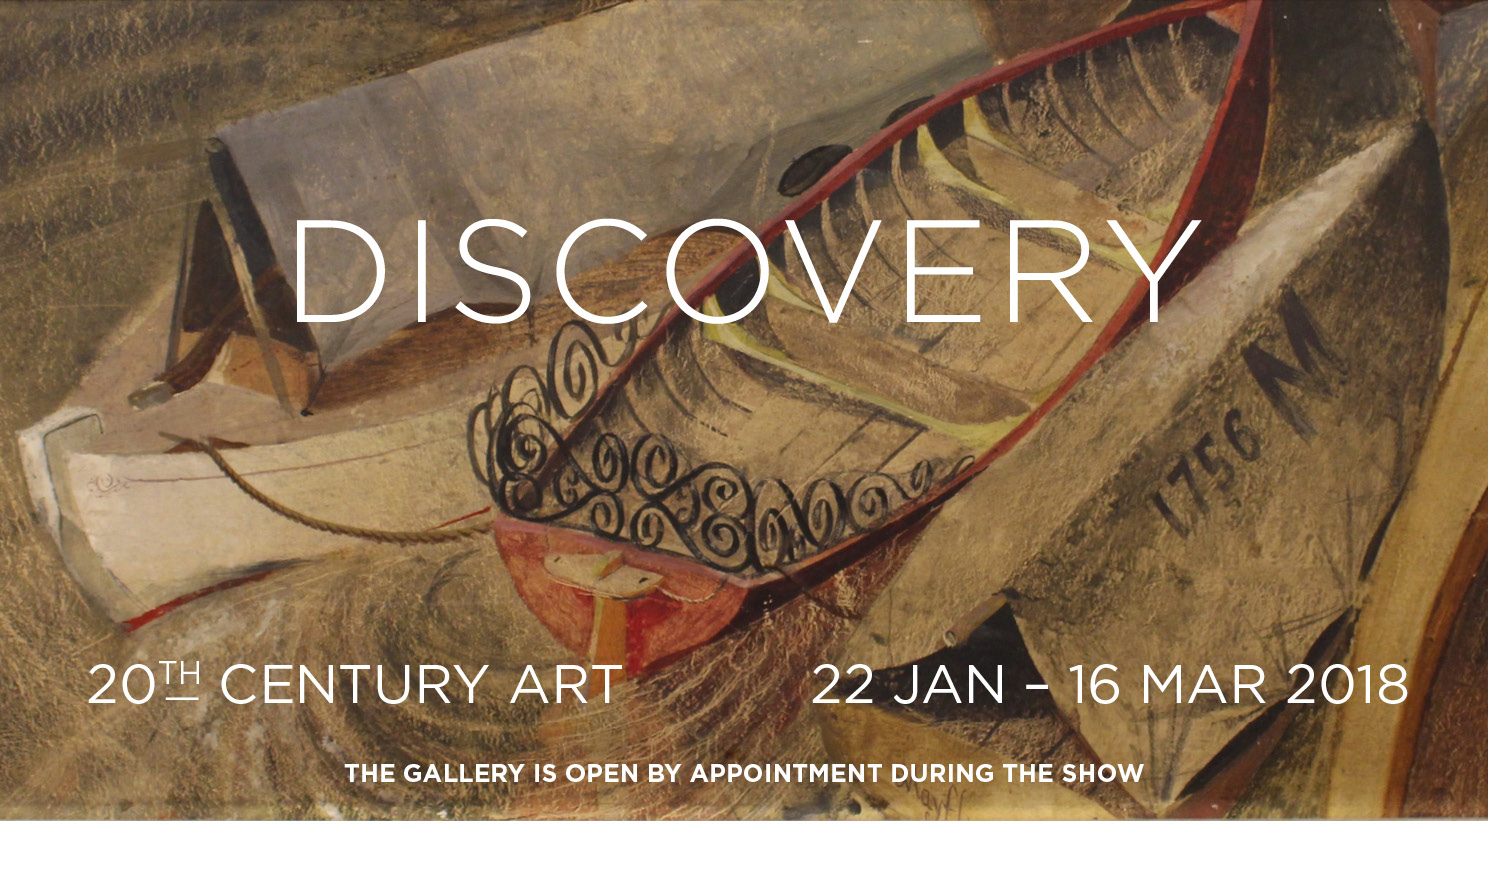 DISCOVERY SHOW